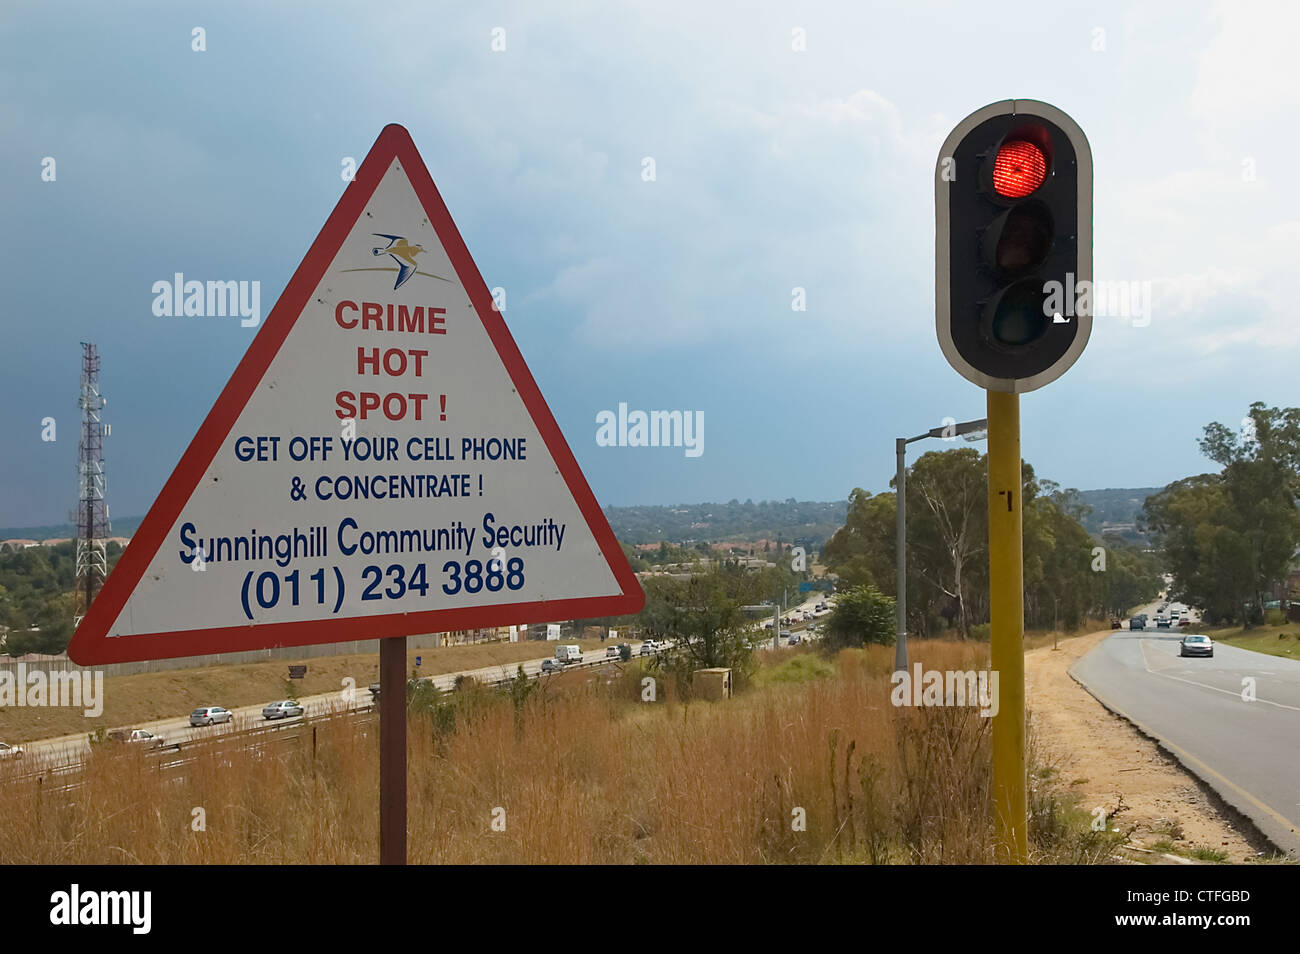 Sign warning of crime hot spot in Johannesburg - Stock Image